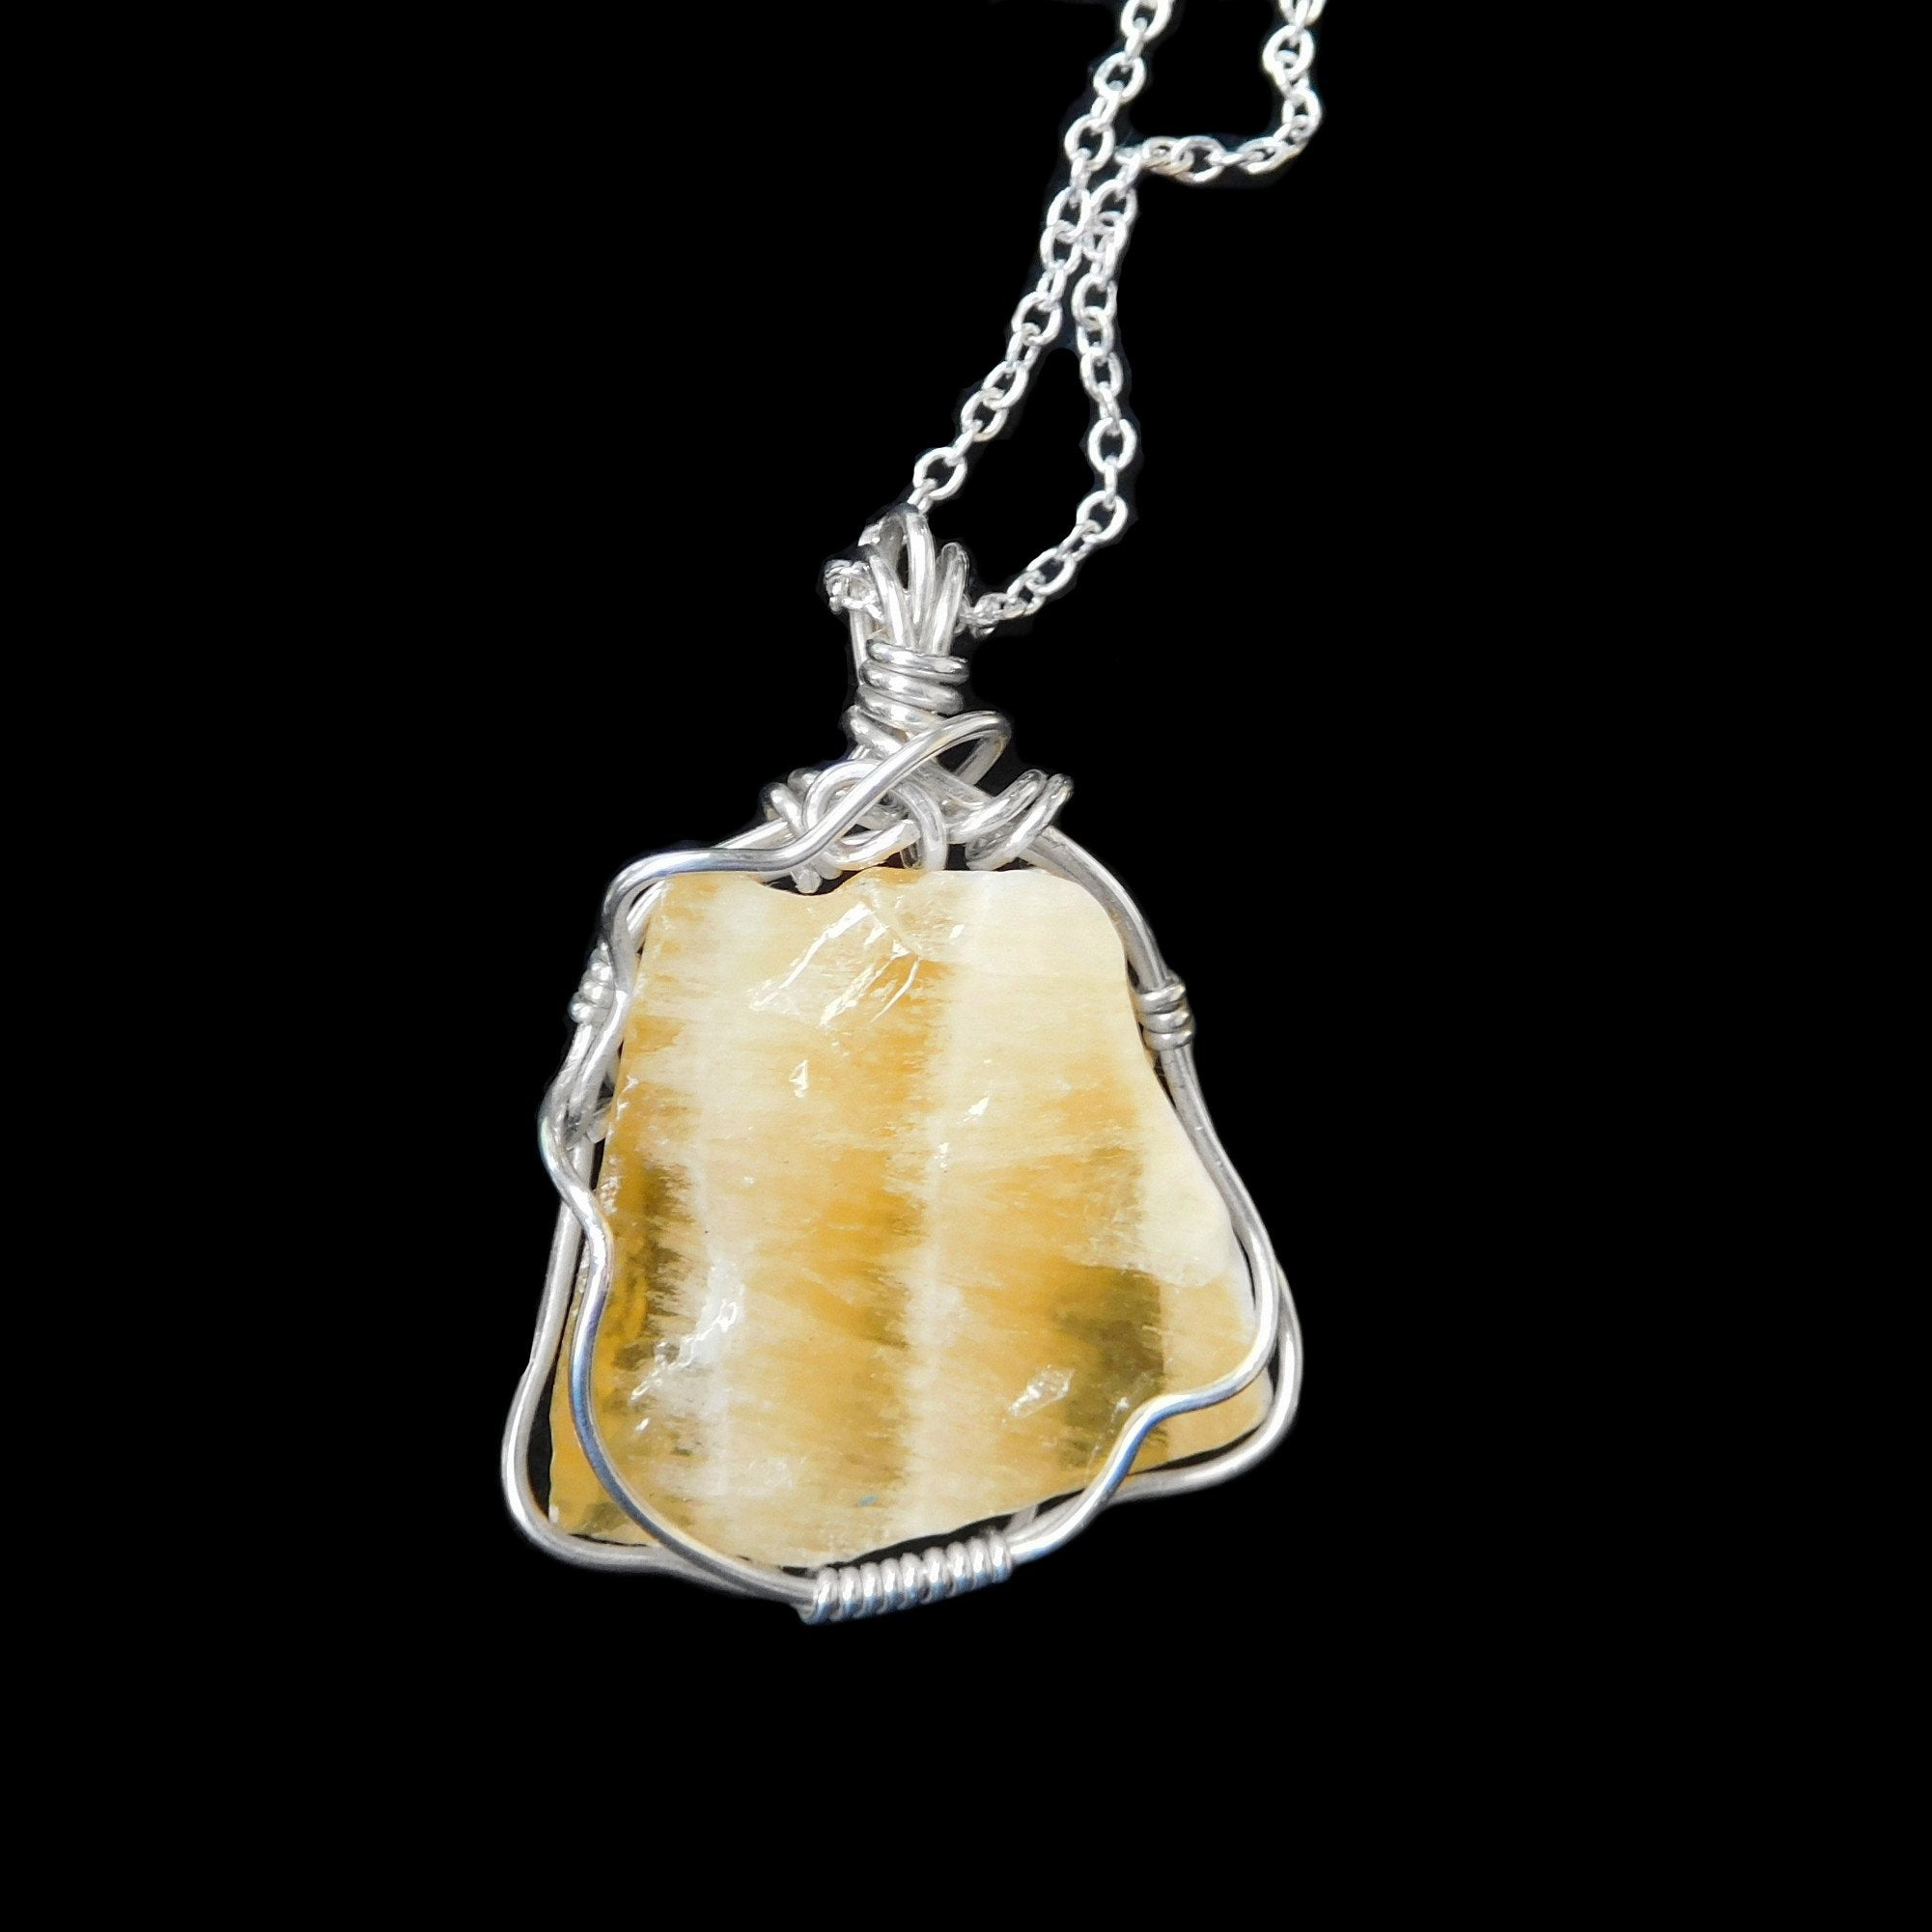 Yellow Calcite pendant, large Calcite natural gemstone, Sterling silver wire wrapped pendant, chakras